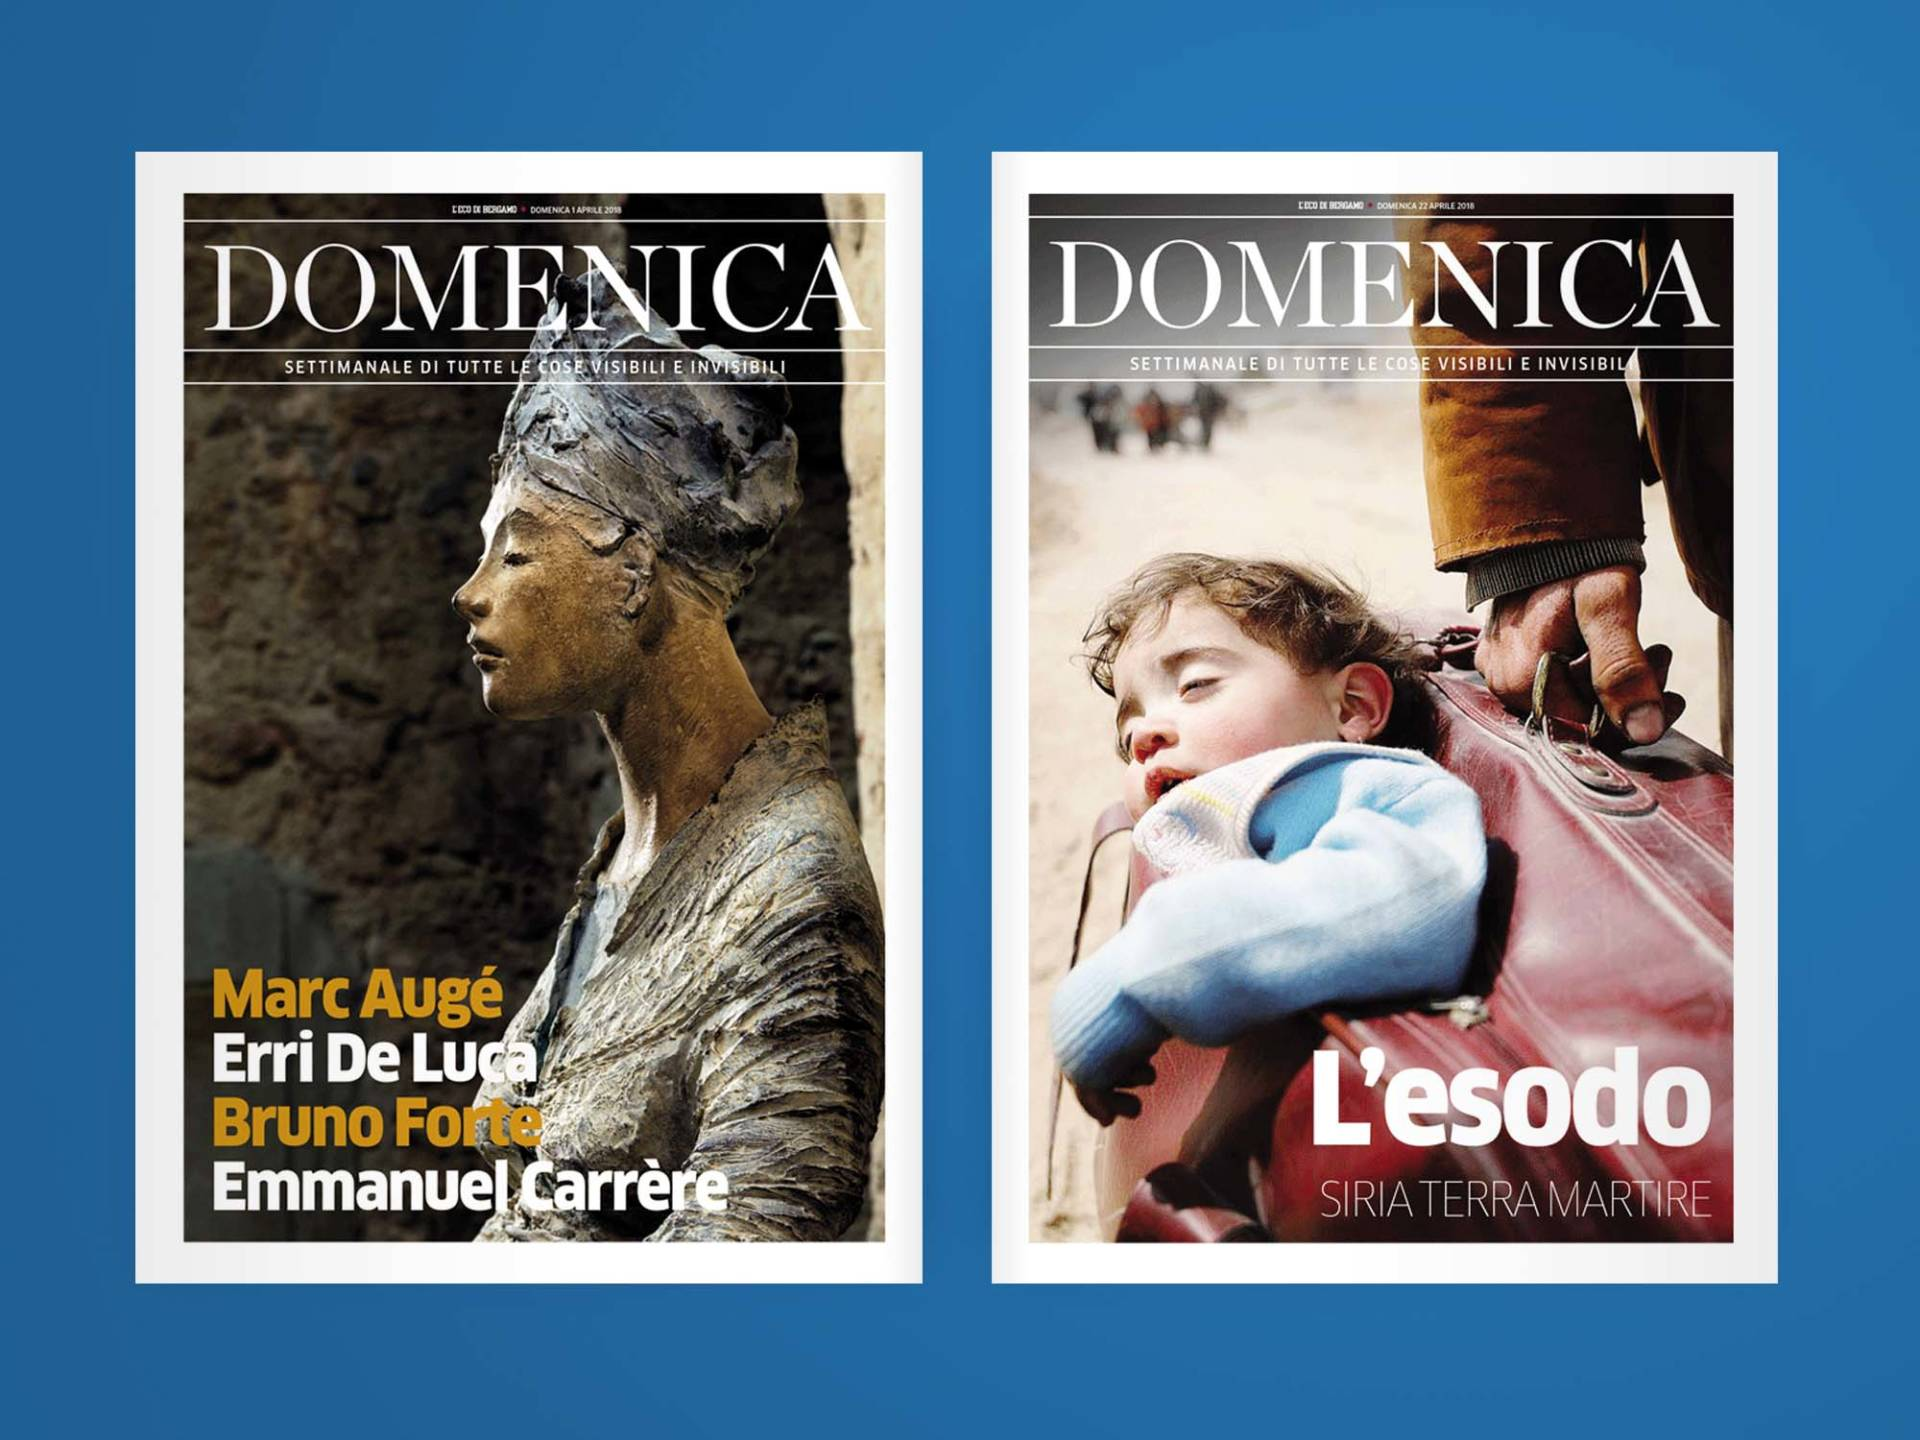 Domenica_02_Wenceslau_News_Design